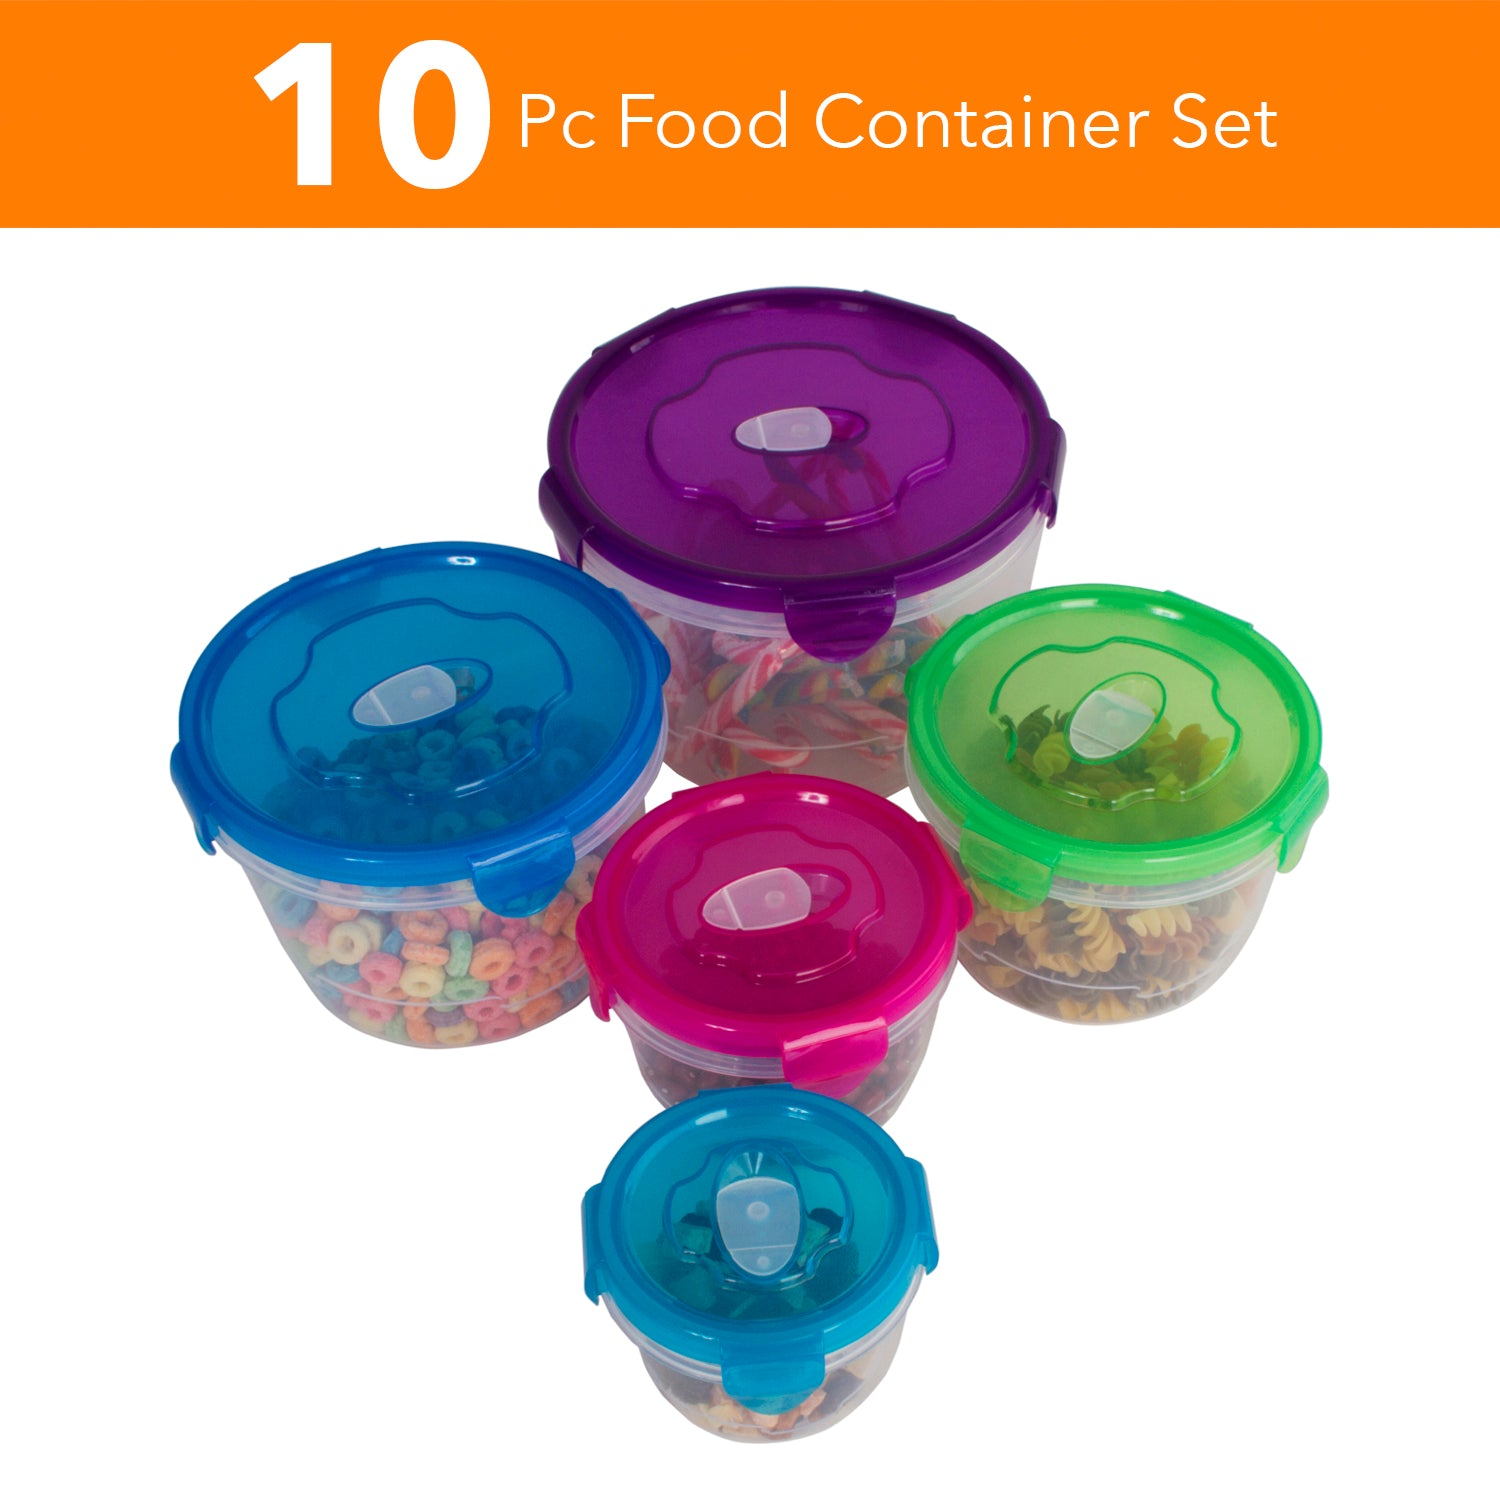 10 Pc Reusable Refrigerator Containers - Freezer Storage Containers - Work Lunch Microwave Containers (Round)